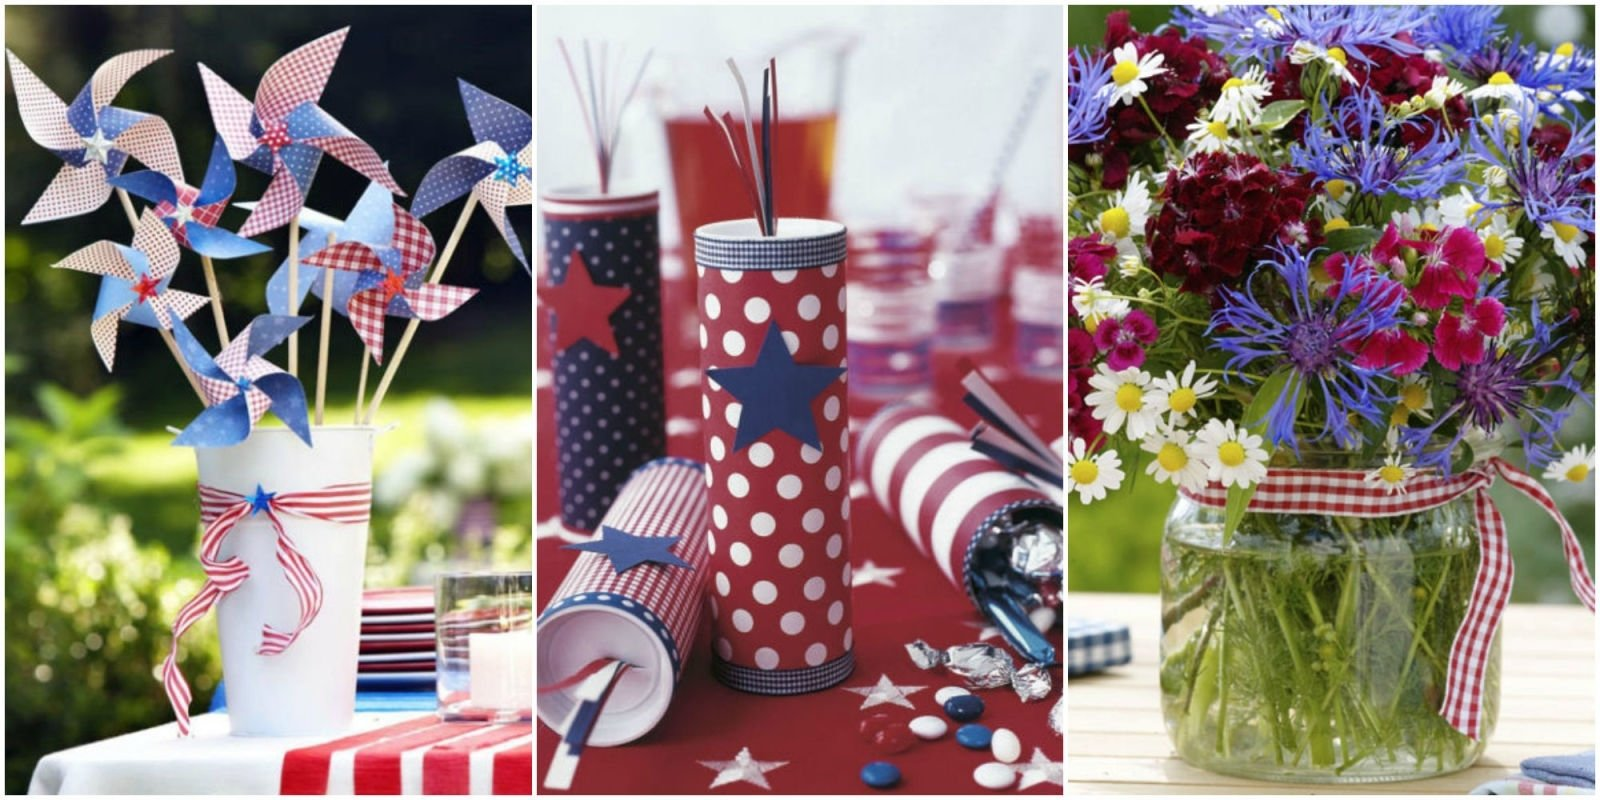 10 Lovely Fourth Of July Decoration Ideas 4th of july decoration ideas diy cute ideas 1 2021